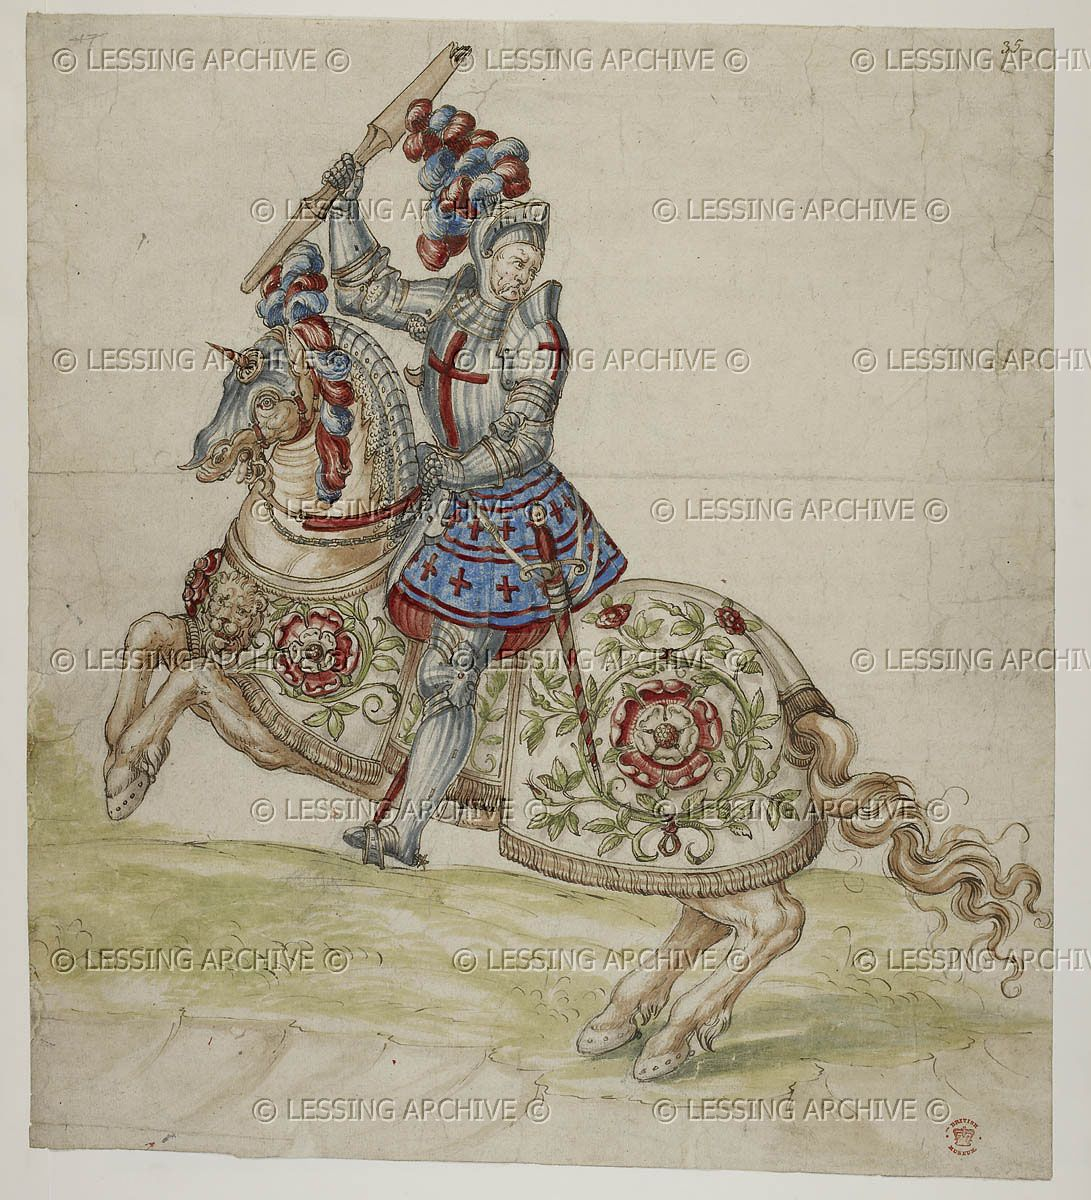 A mounted knight S. Netherlands (?), early 16th century Cotton Augustus III f. 35   The British Library, London, Great Britain